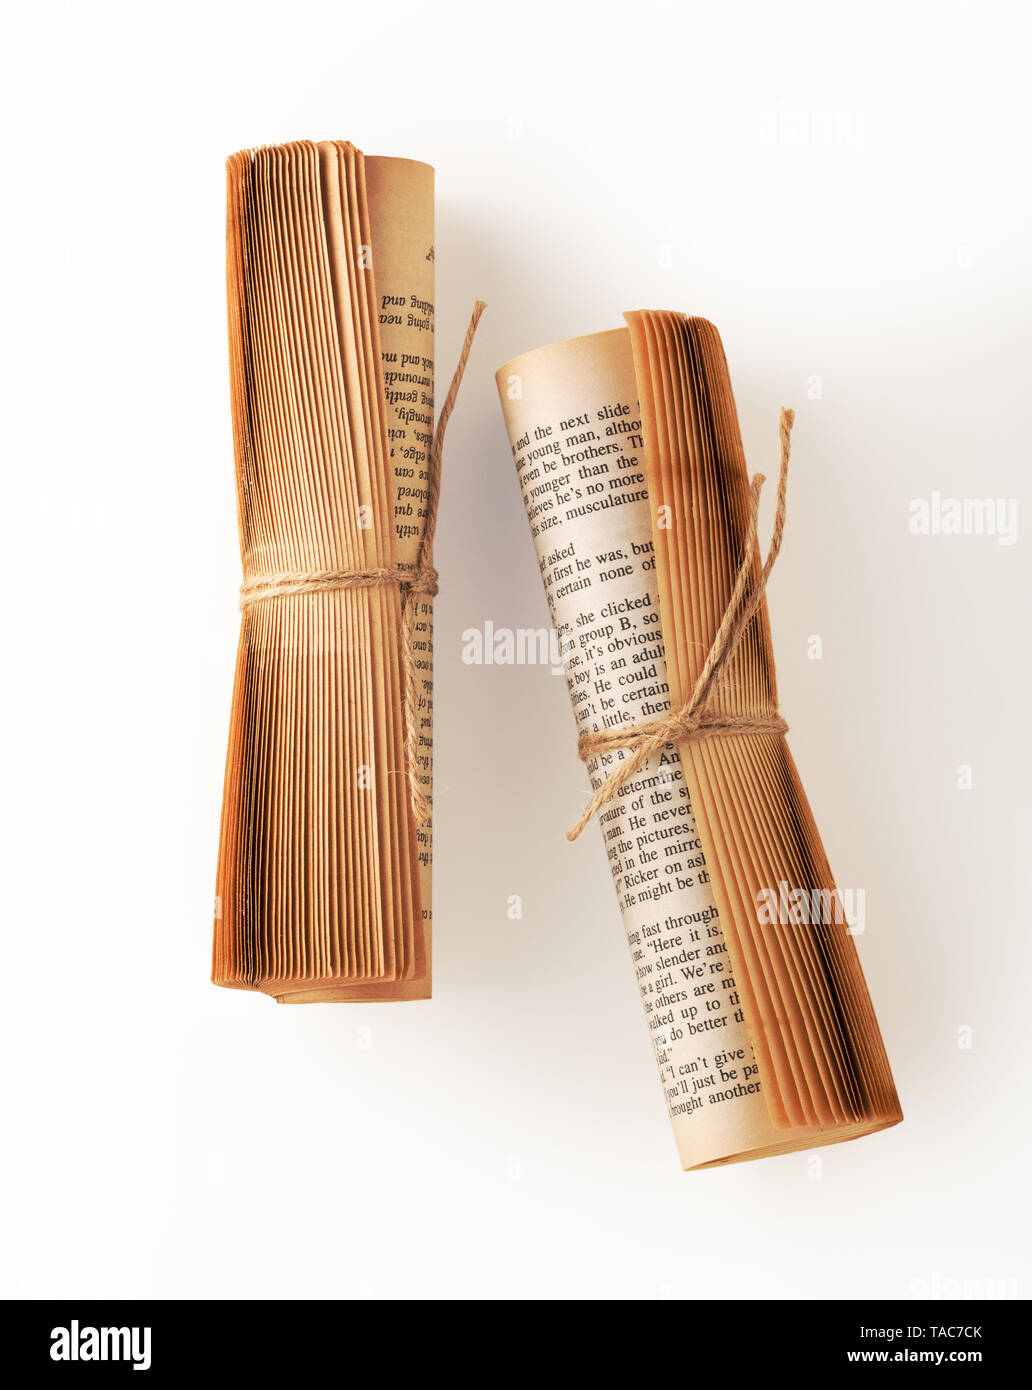 Old book paper roll with brown string tied, vintage book decor on white background - Stock Image